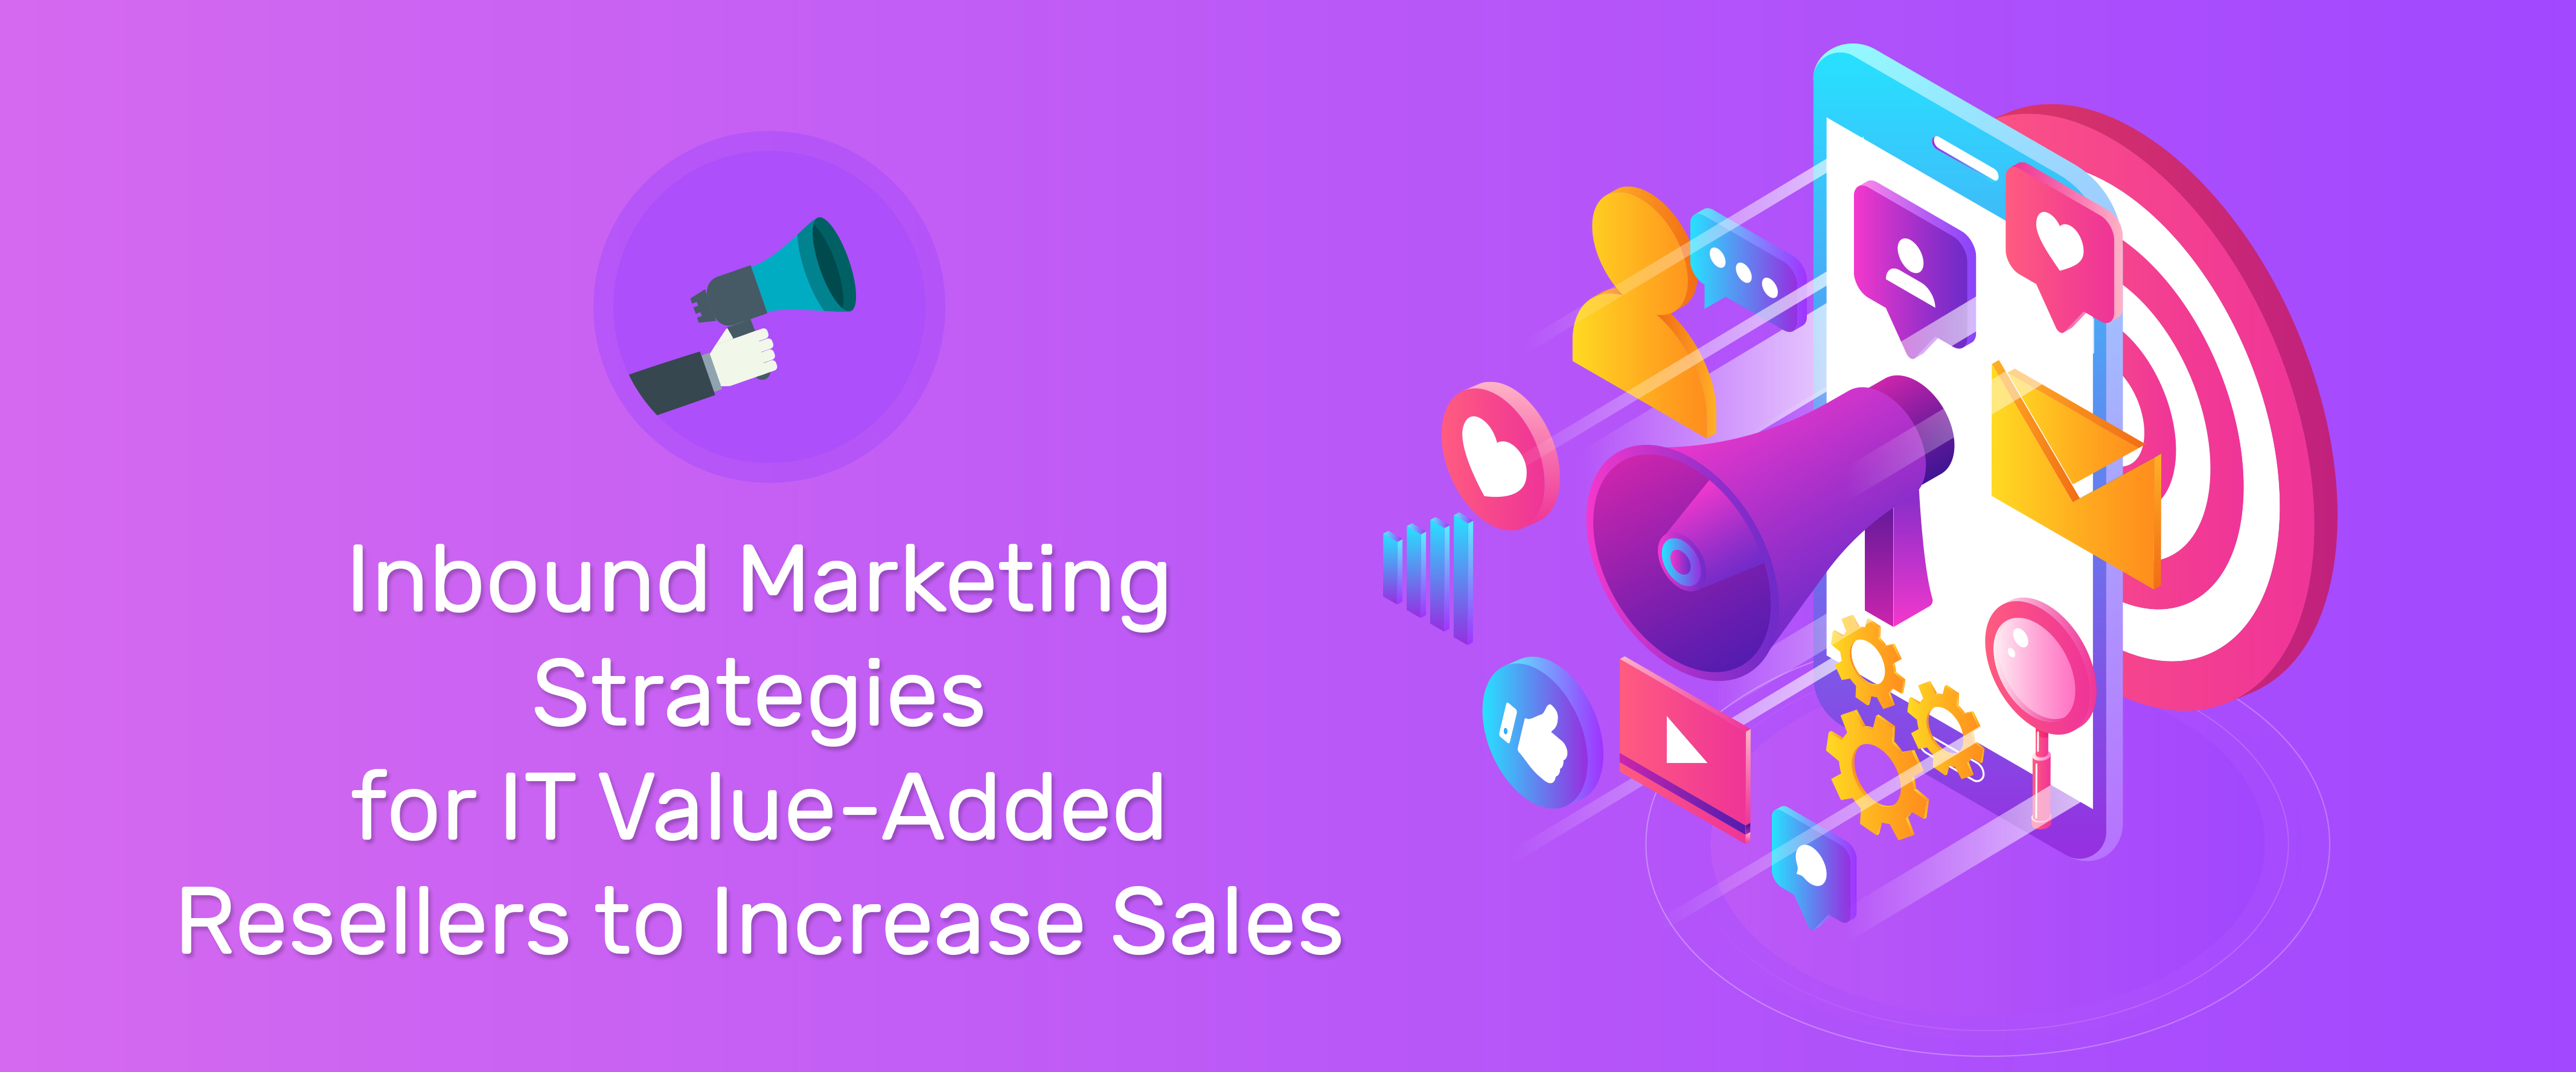 Inbound Marketing Strategies for IT Value-Added Resellers to Increase Sales